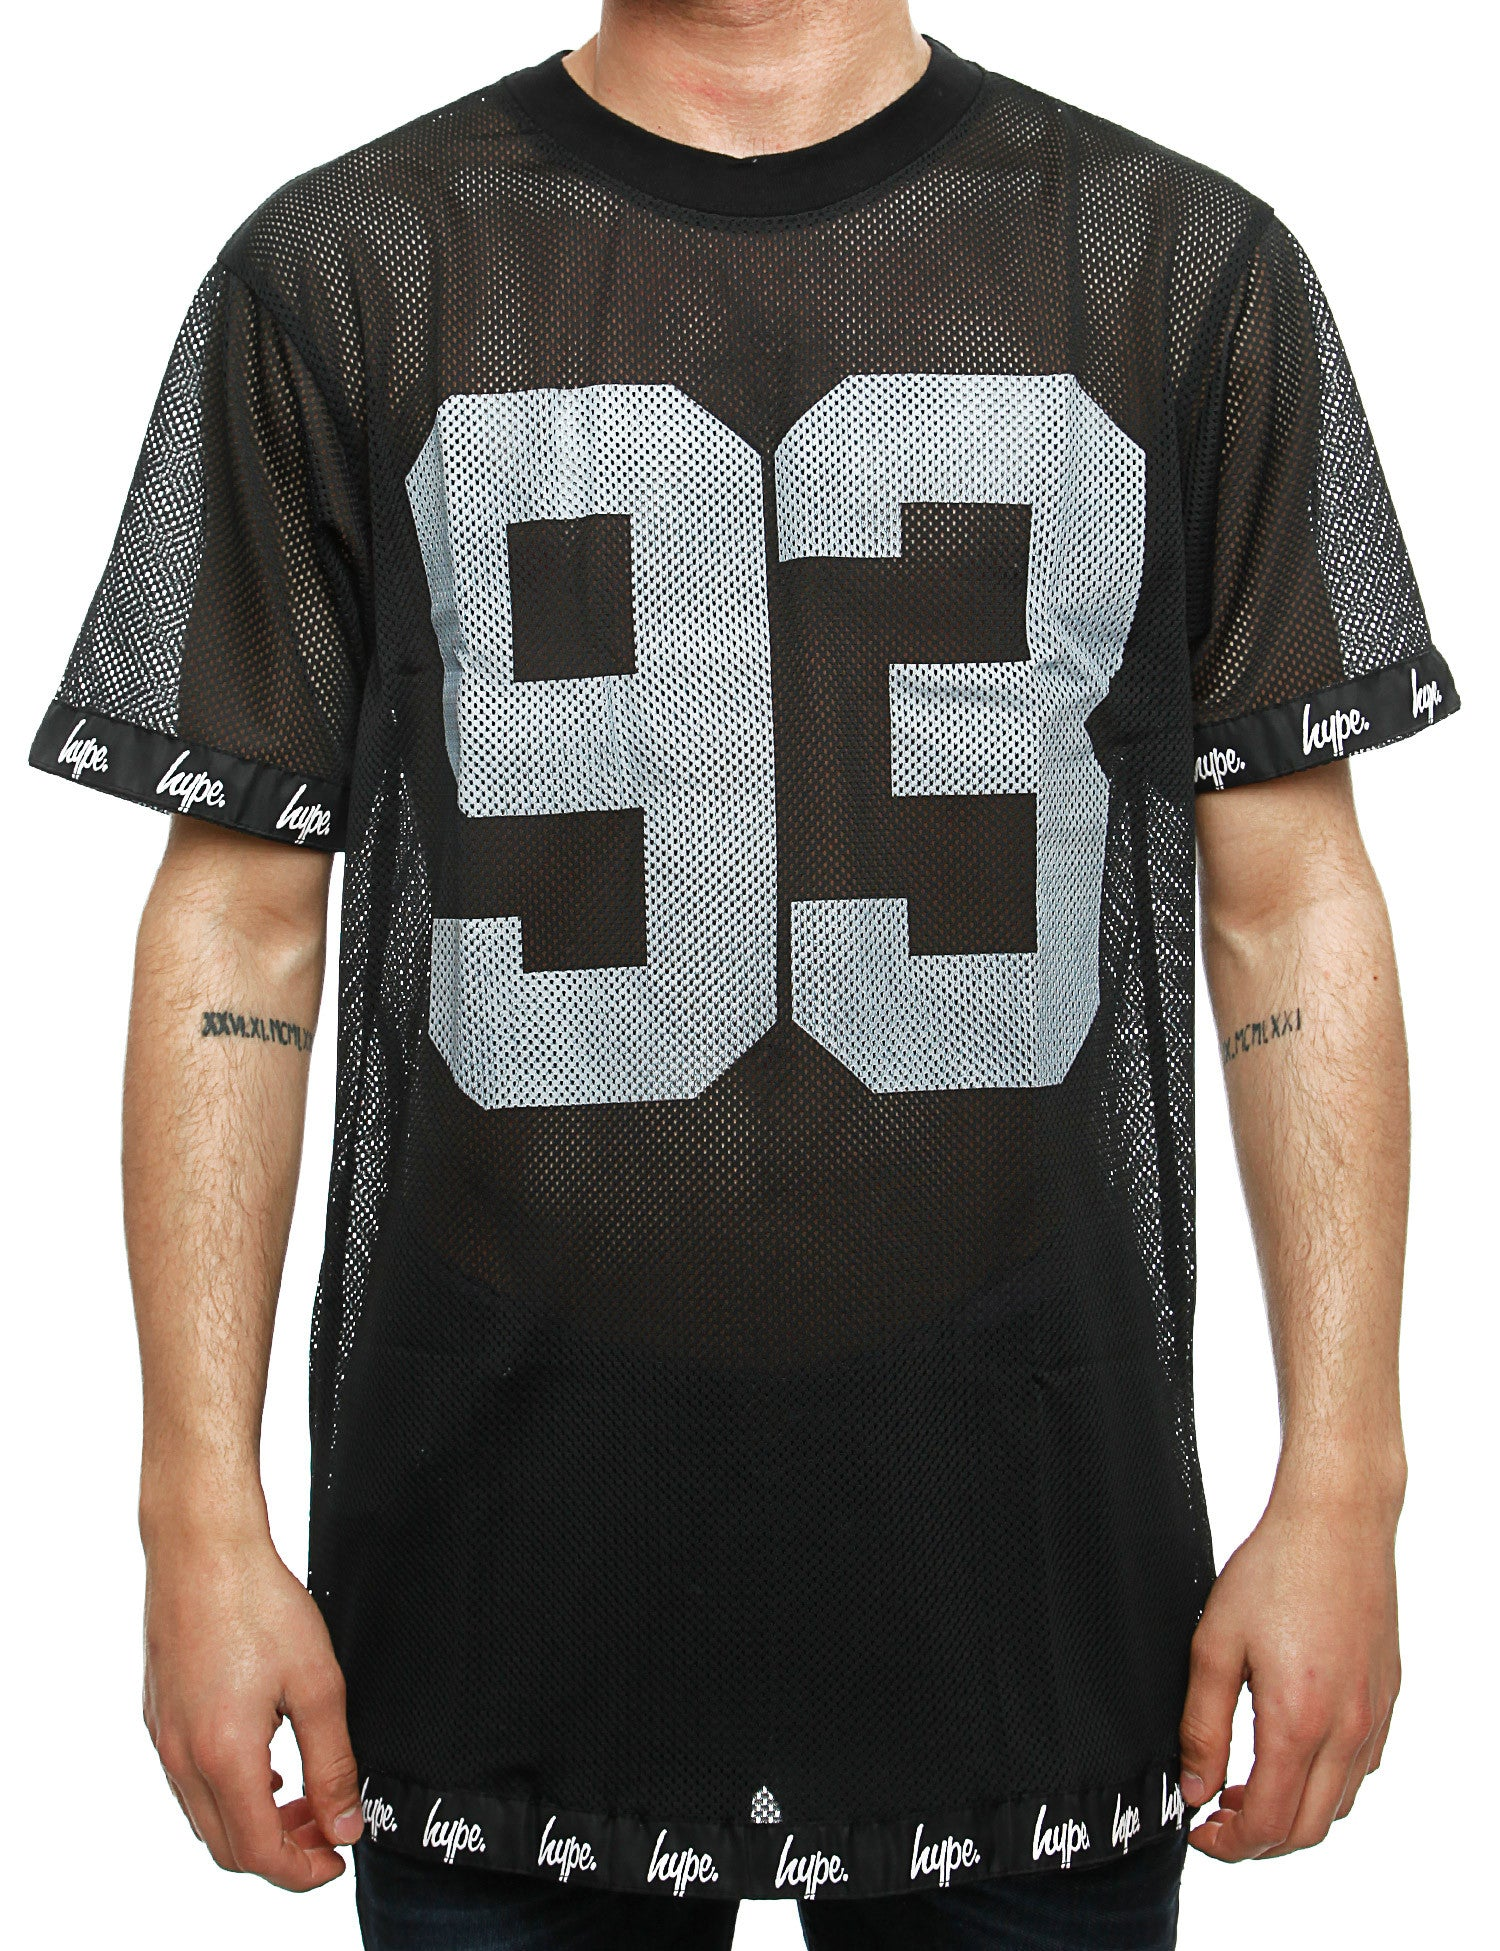 Hype 93 Mesh Oversized T-Shirt SP15TEE53 Black